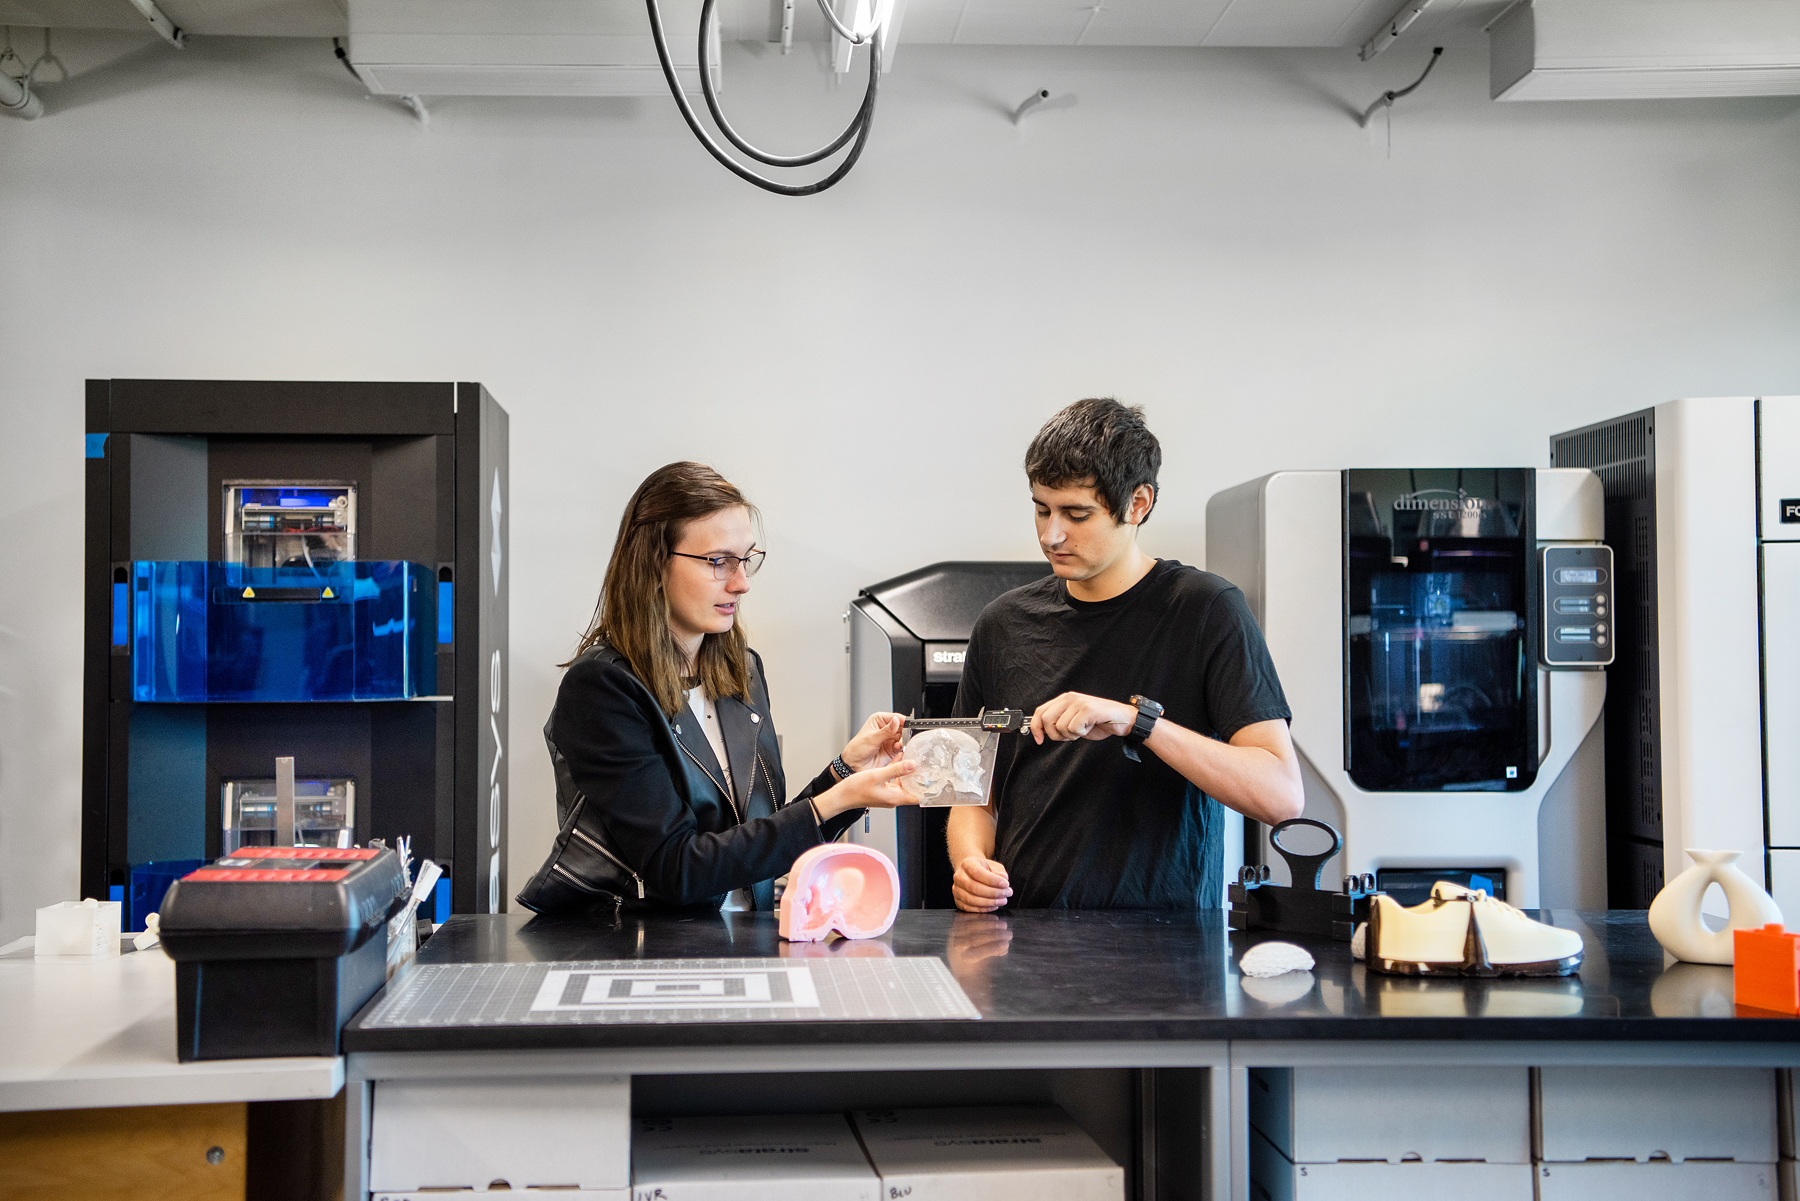 SUNY New Paltz 3D printing